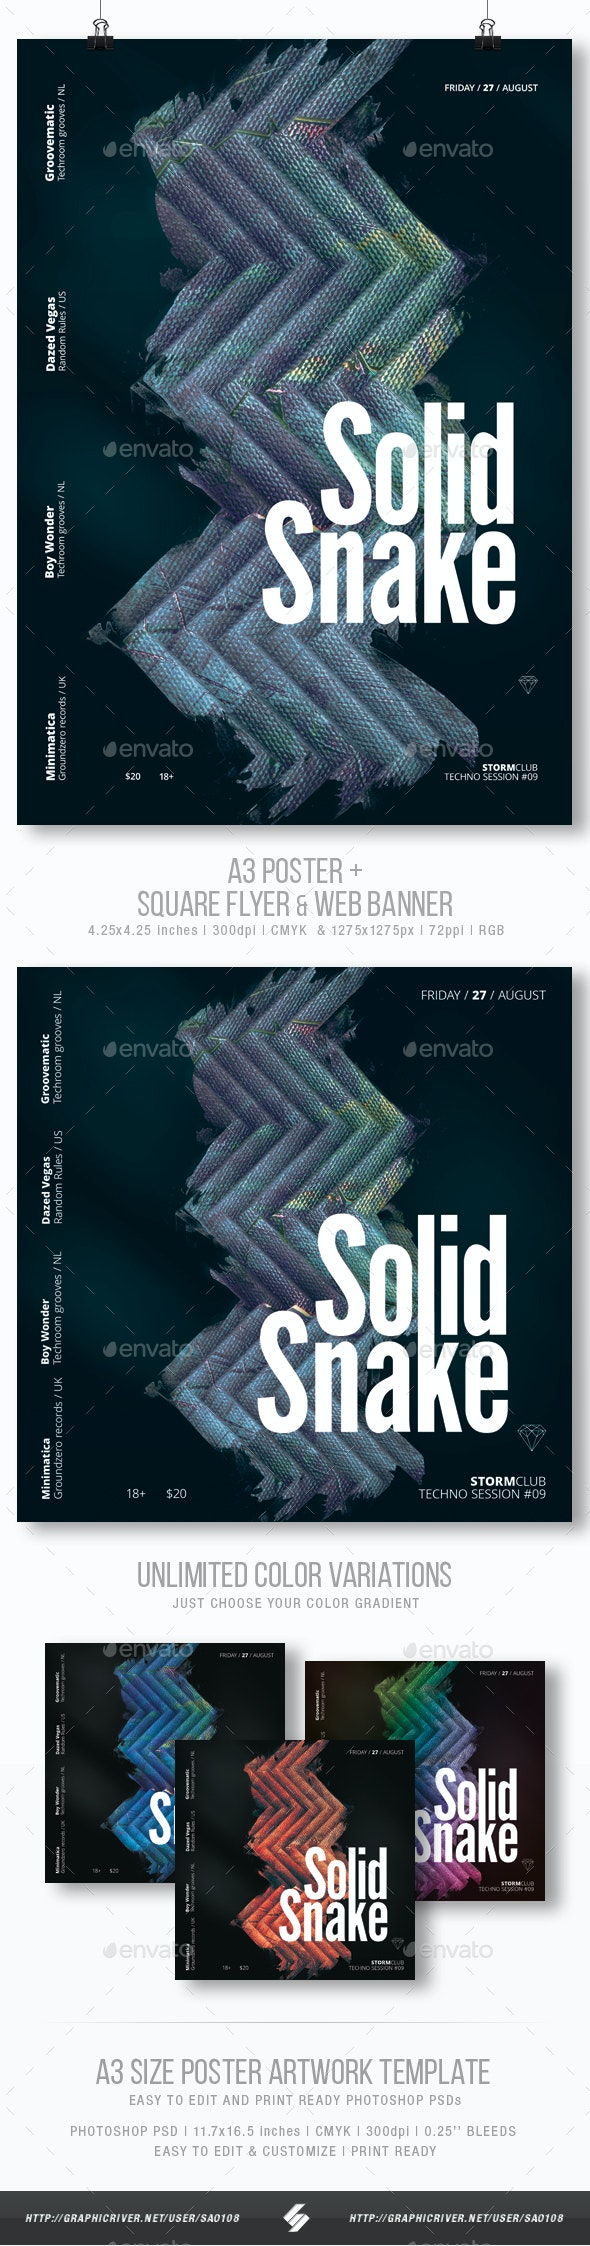 Solid Snake - Minimal Party Flyer / Poster Artwork Template A3 - Clubs & Parties Events